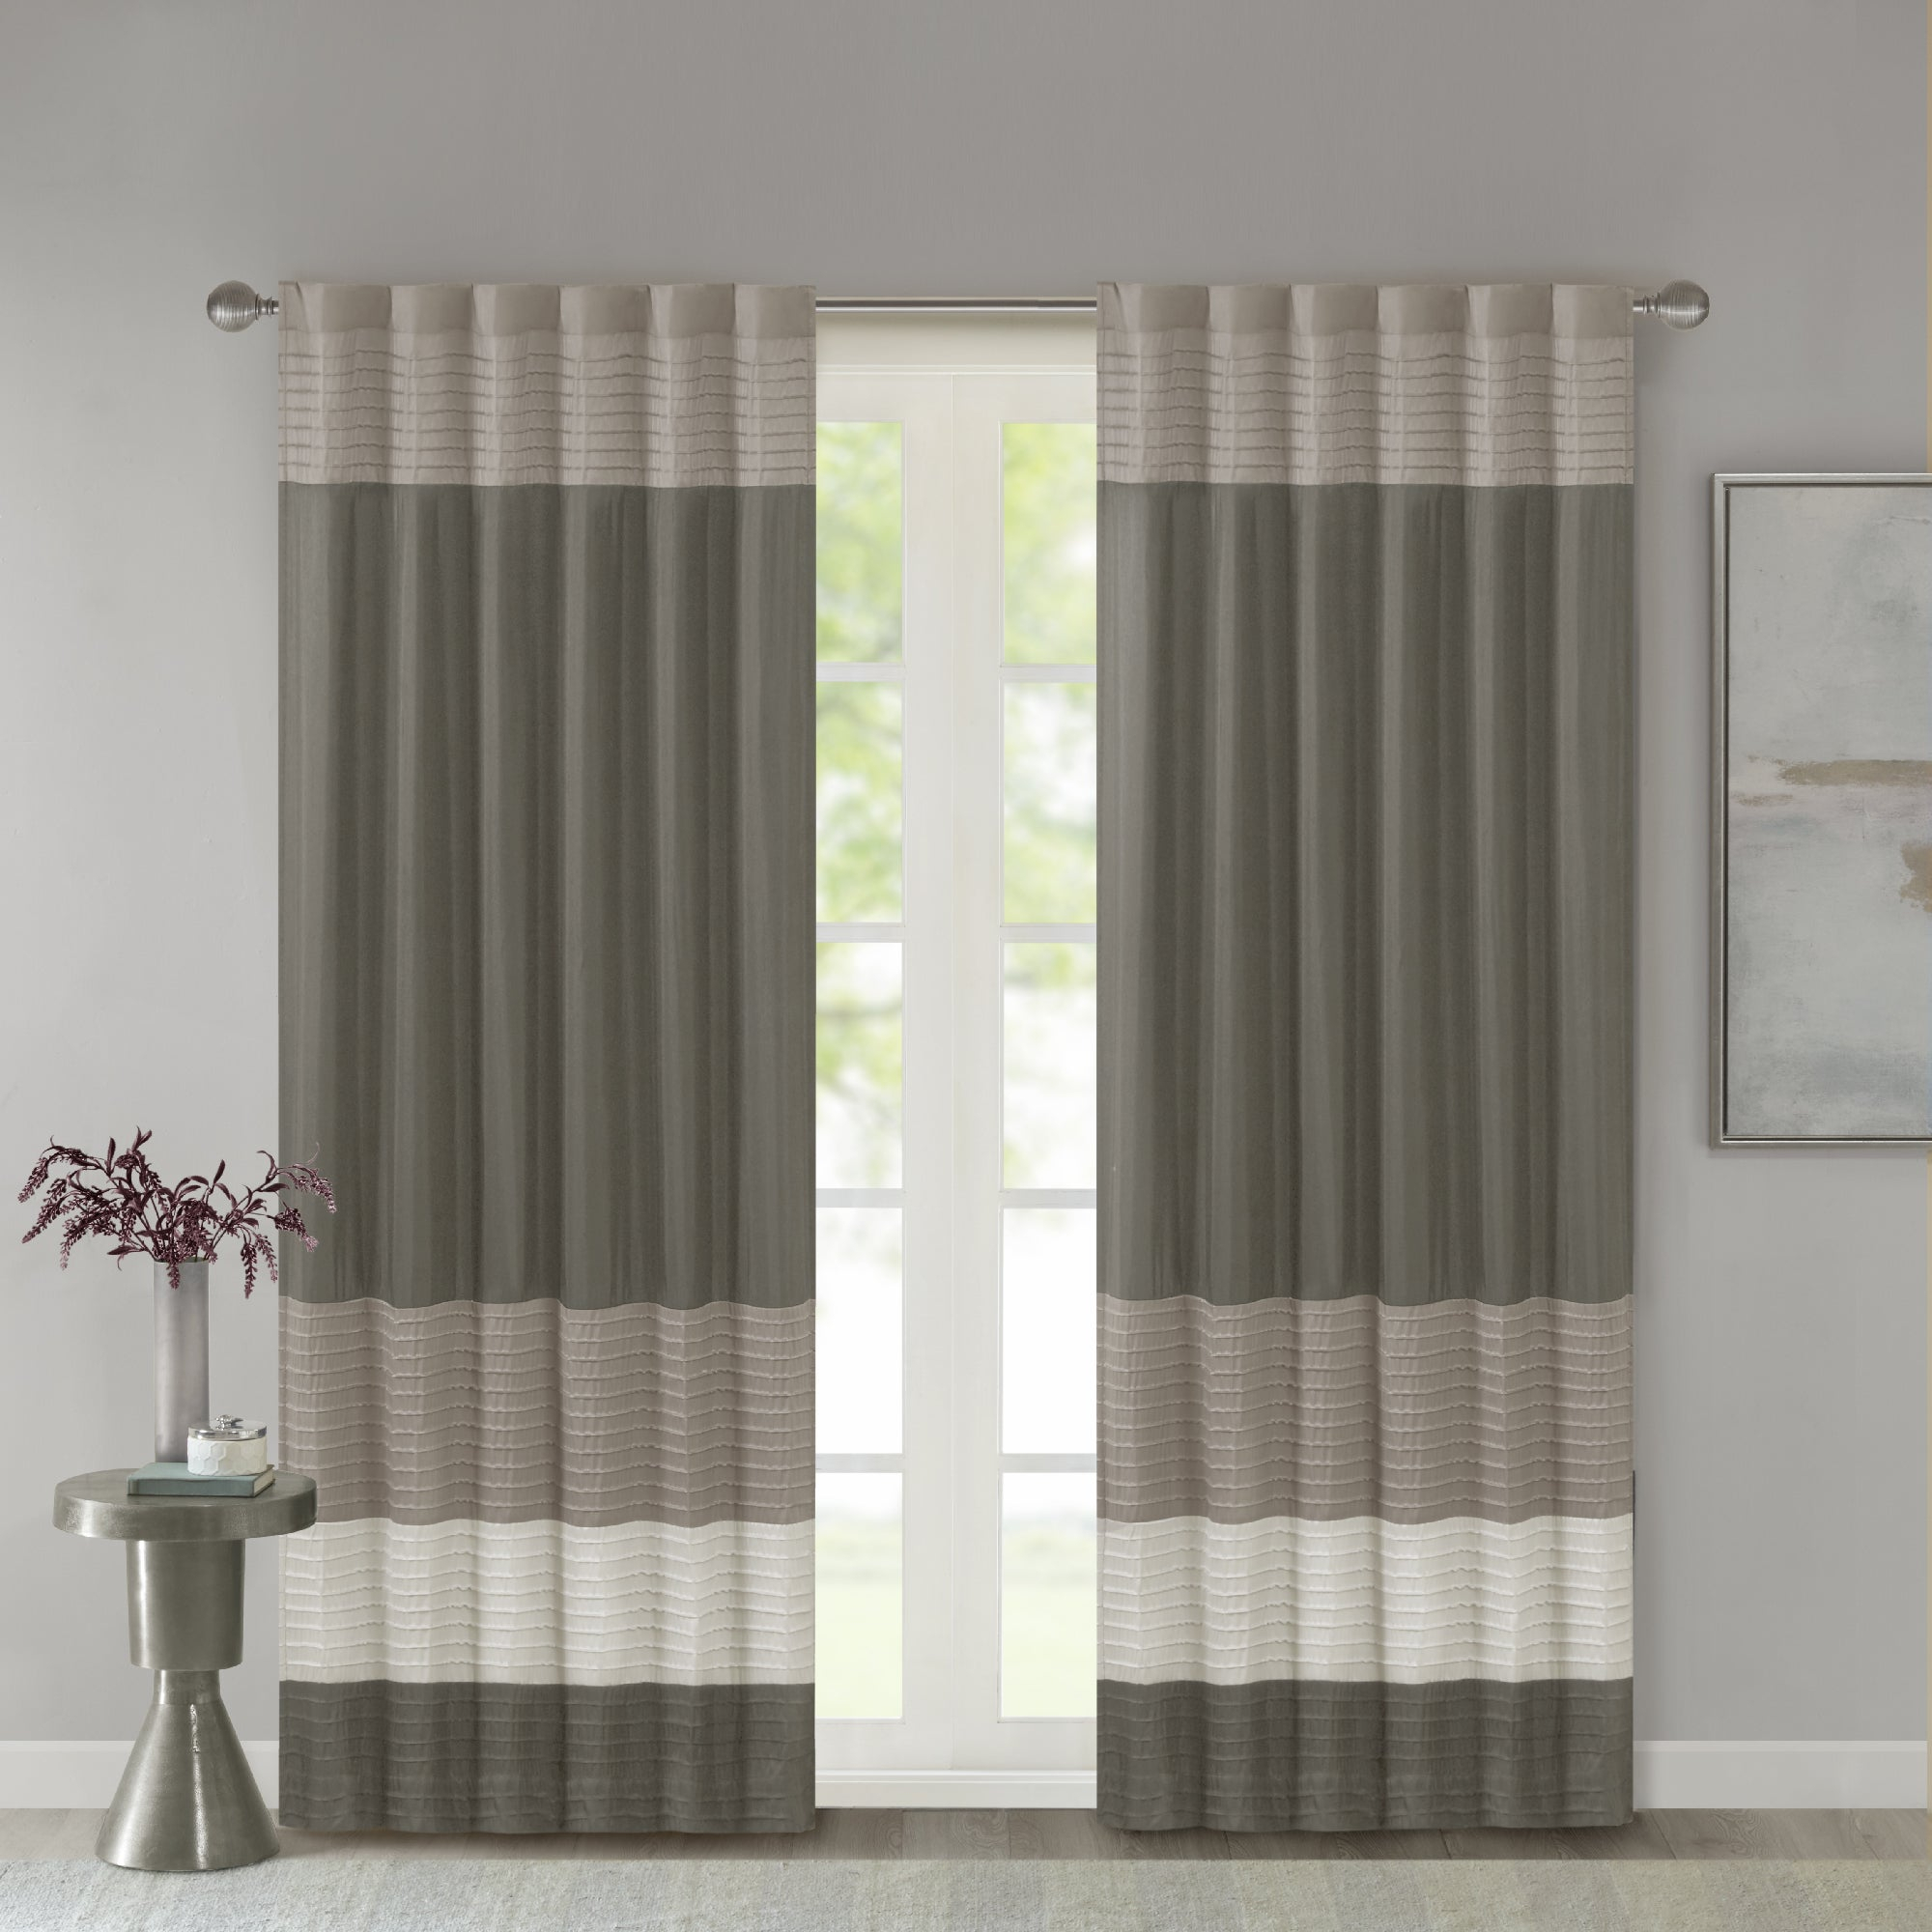 Madison Park Infinity Polyoni Pintuck Single Window Curtain Panel Regarding Chester Polyoni Pintuck Curtain Panels (View 20 of 20)